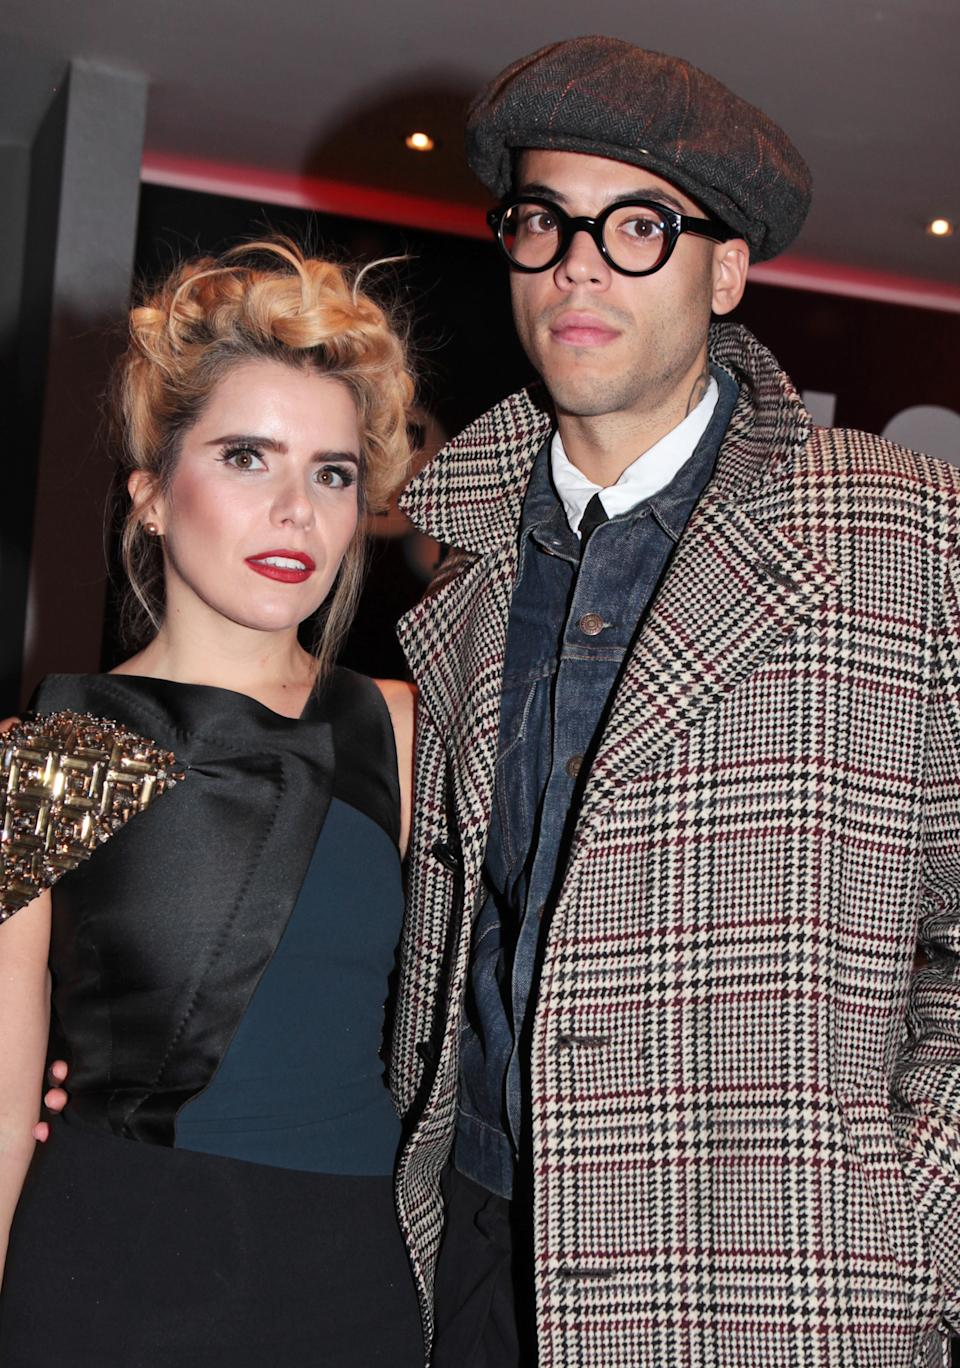 """LONDON, ENGLAND - OCTOBER 15:  Paloma Faith (L) and Leyman Lahcine attend a screening of """"Youth"""" during the BFI London Film Festival at Vue West End on October 15, 2015 in London, England.  (Photo by David M. Benett/Dave Benett/WireImage)"""